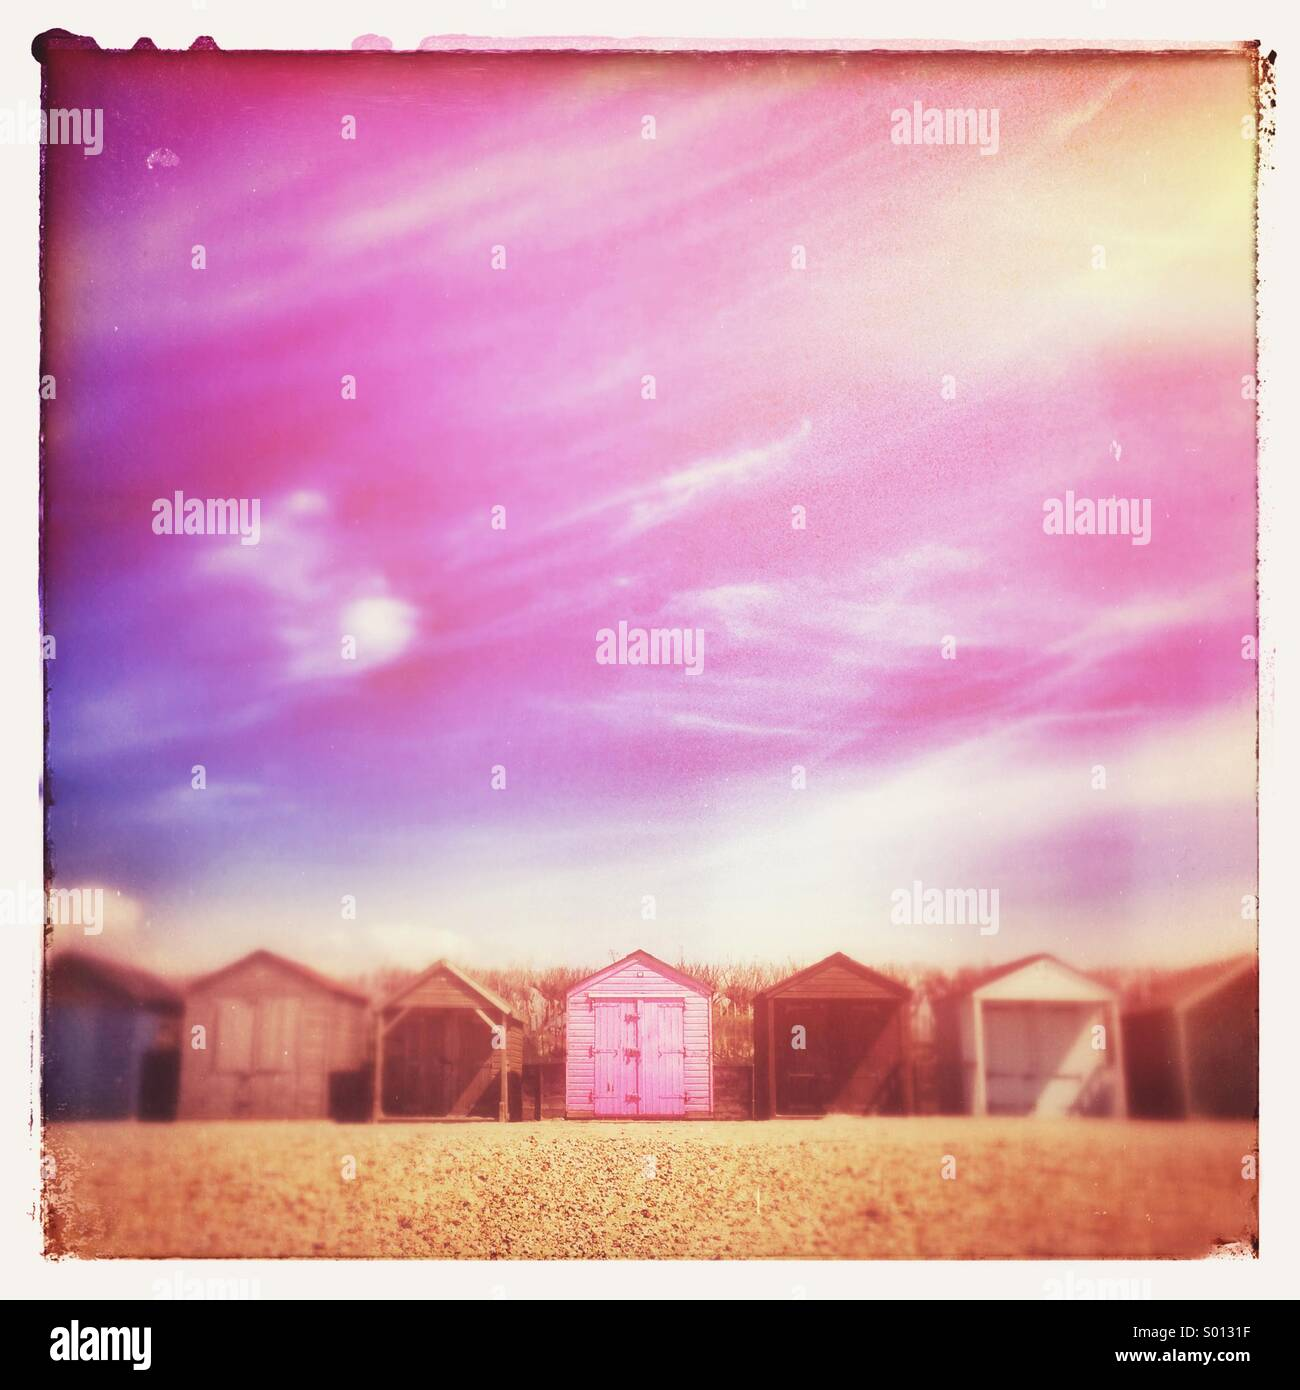 Pink Beach Hut Stock Photos Pink Beach Hut Stock Images Alamy